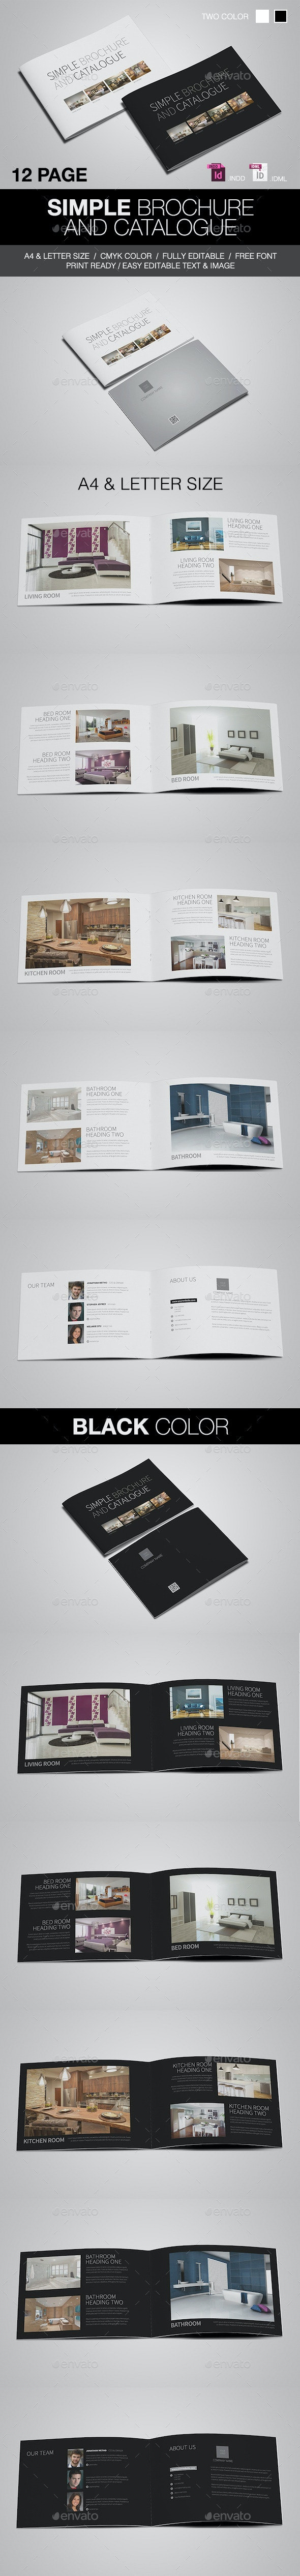 Simple Catalogue/Brochure - Brochures Print Templates